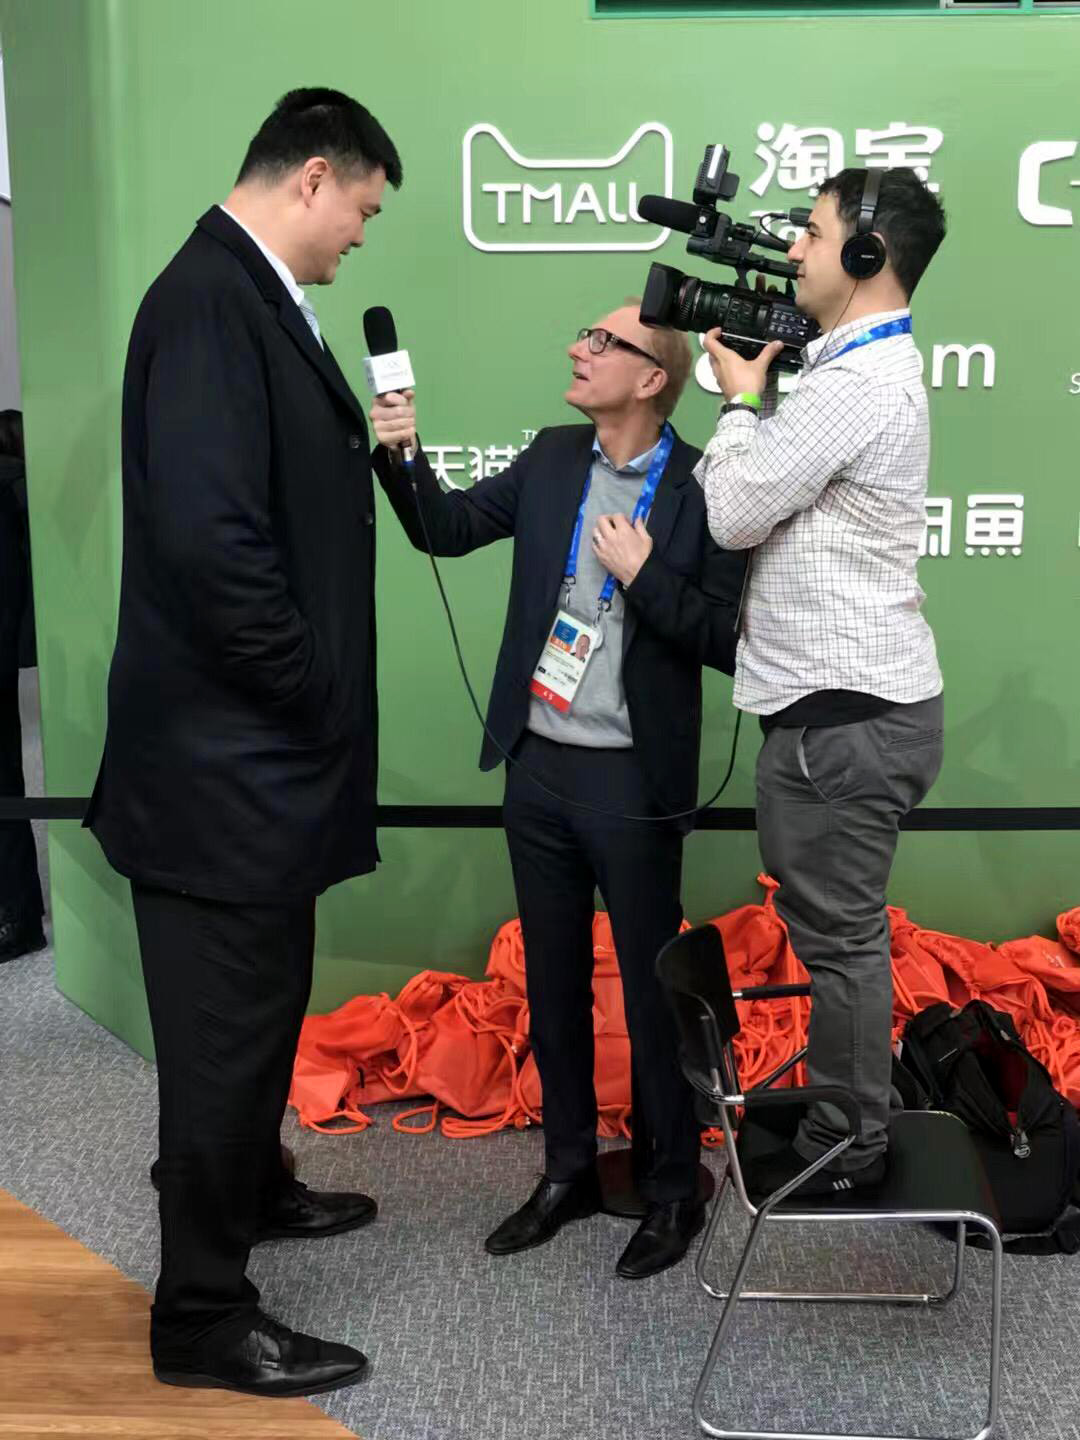 interview with Yao Ming, video production Seoul, South Korea